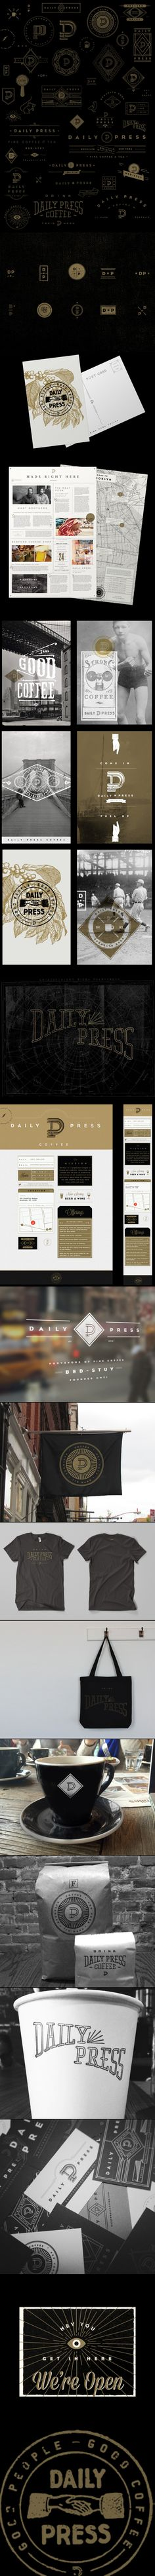 Daily Press in Brooklyn coffee time #identity #packaging #branding PD